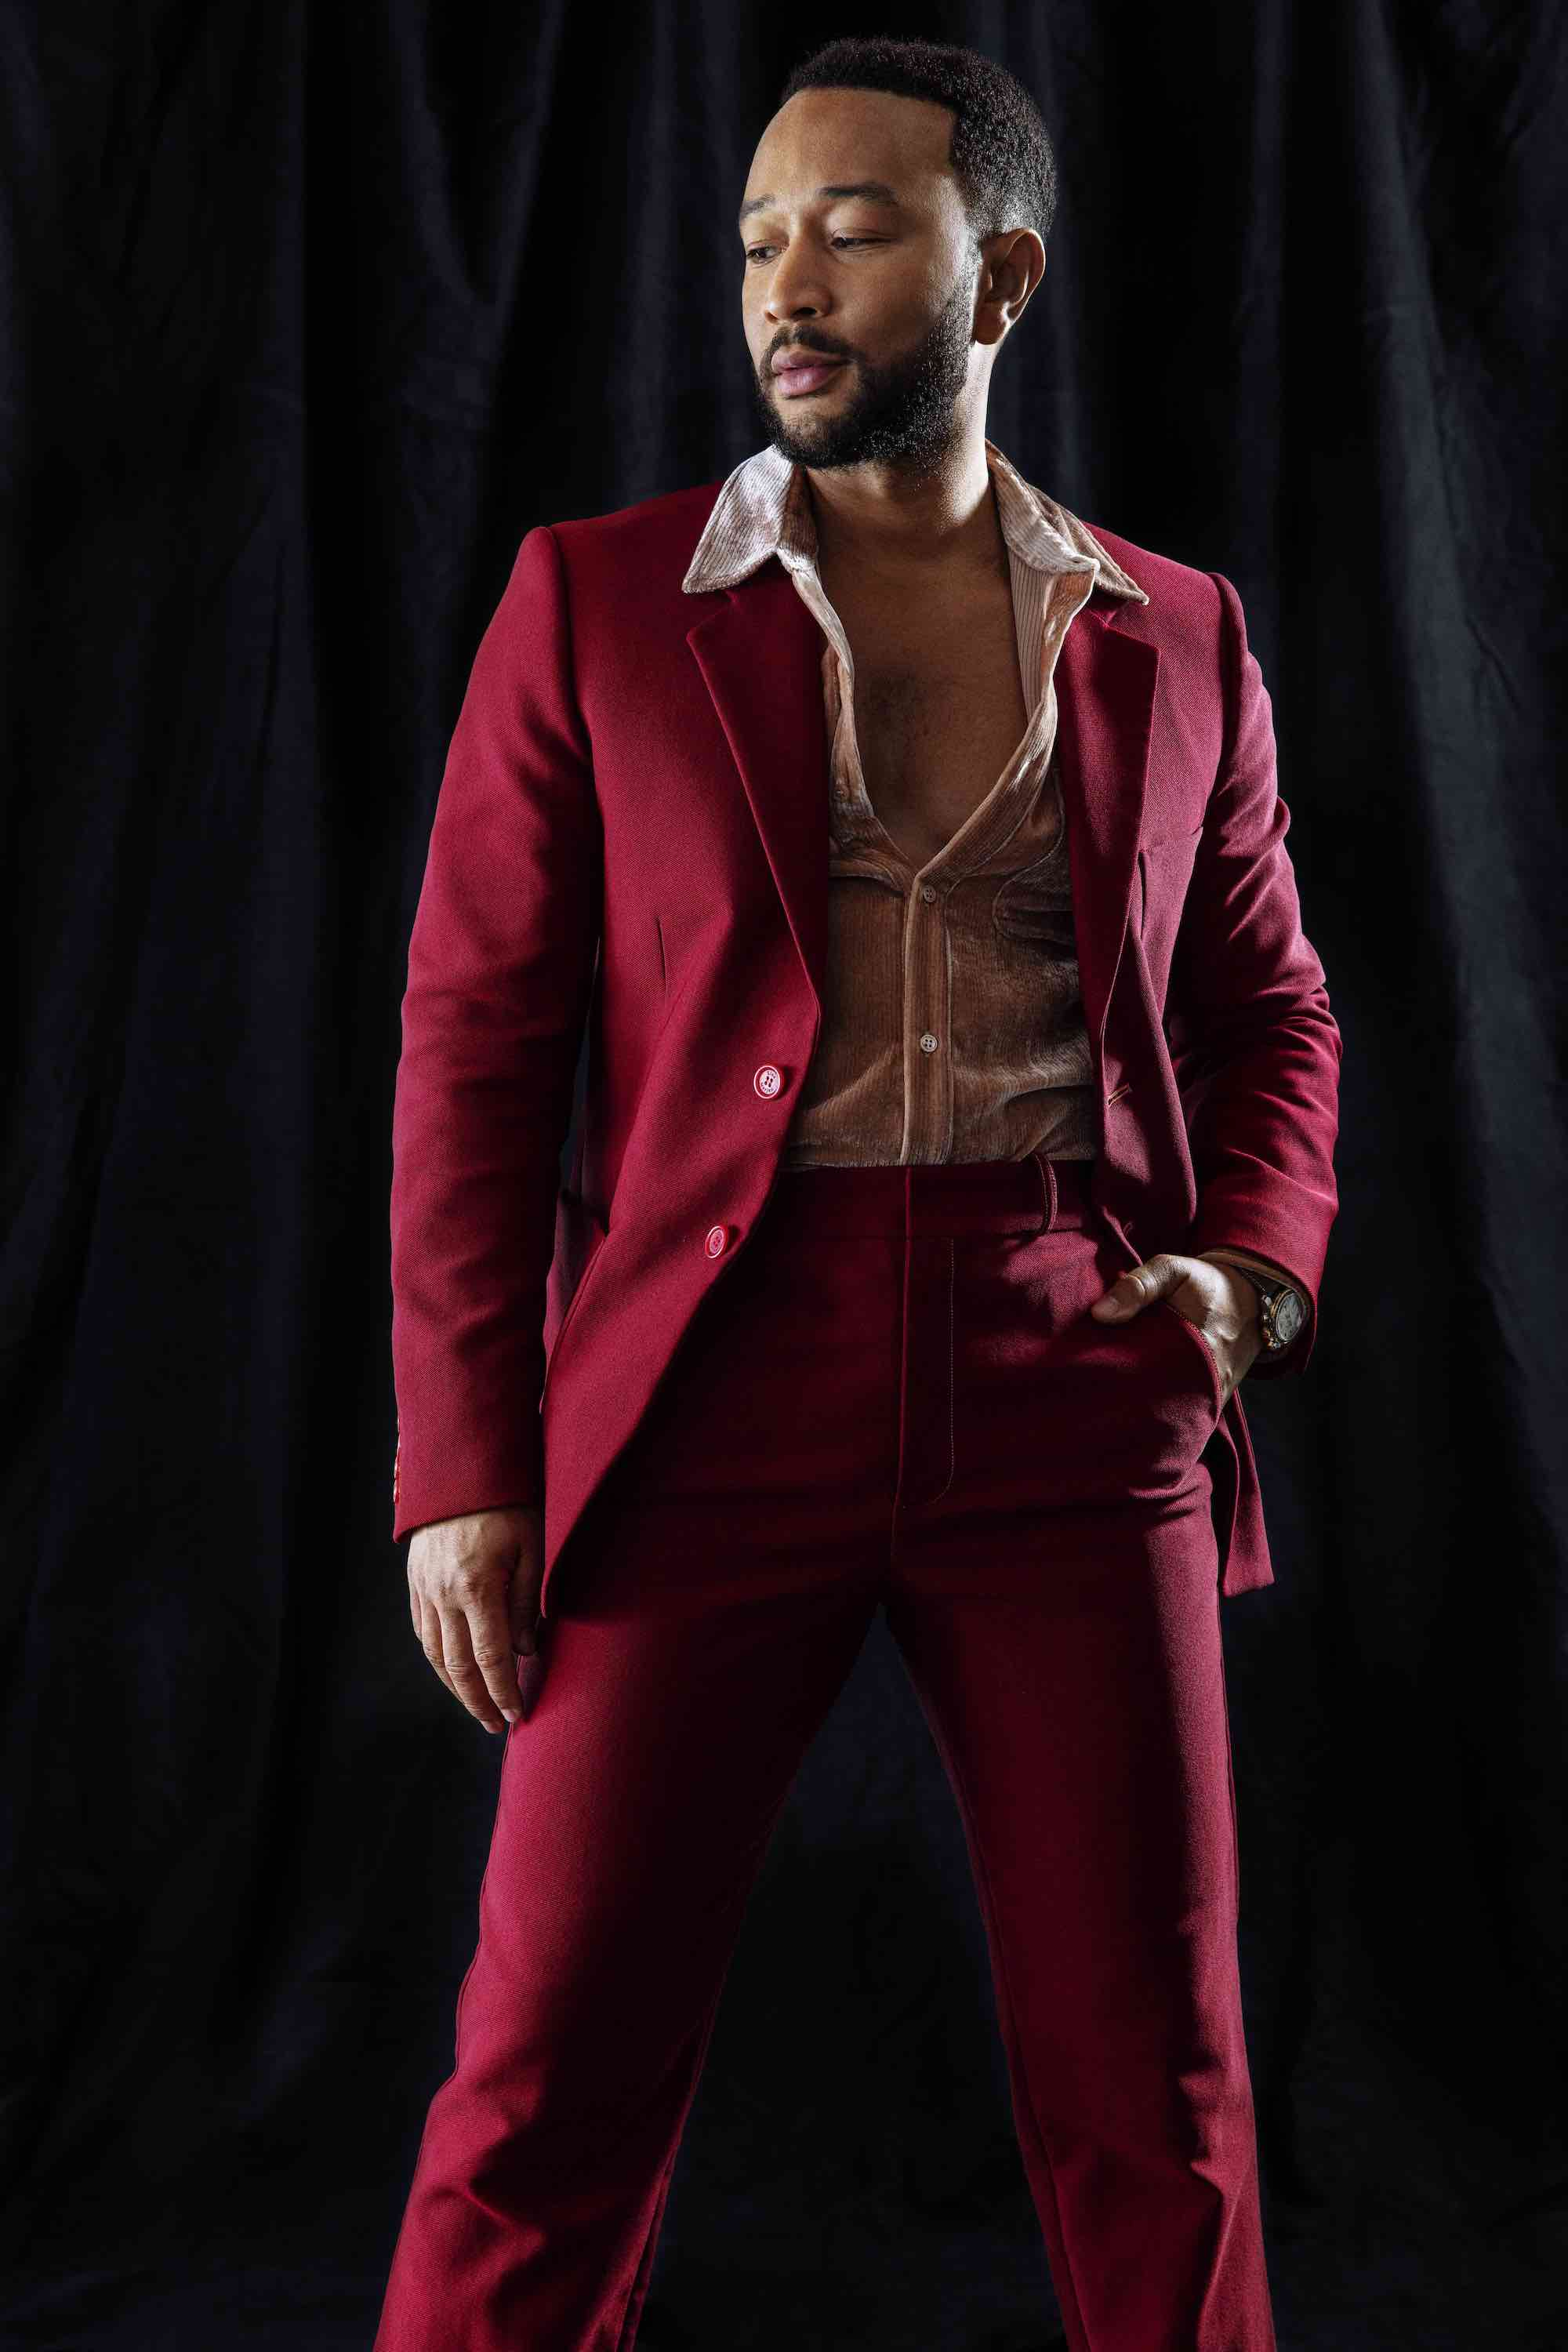 John Legend red suit with open suit